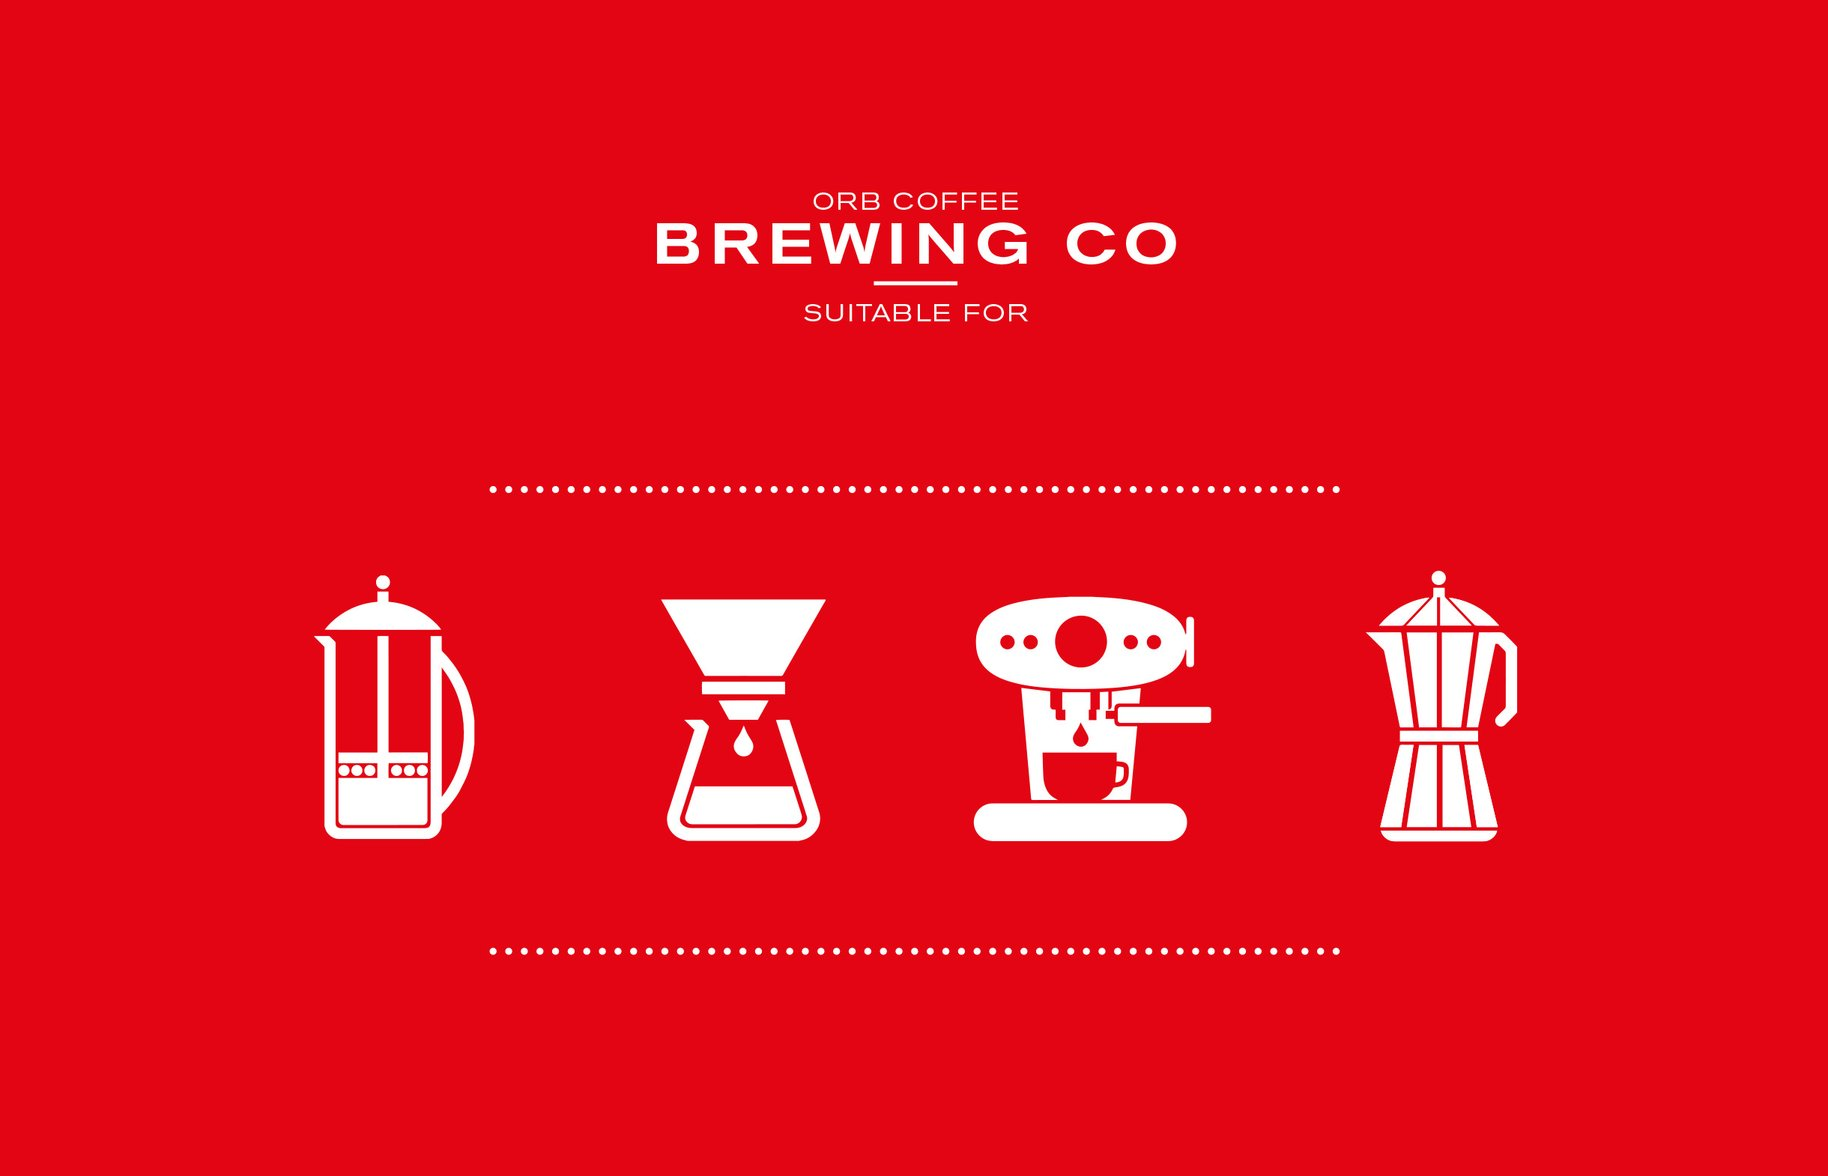 Orb Coffee brewing icons